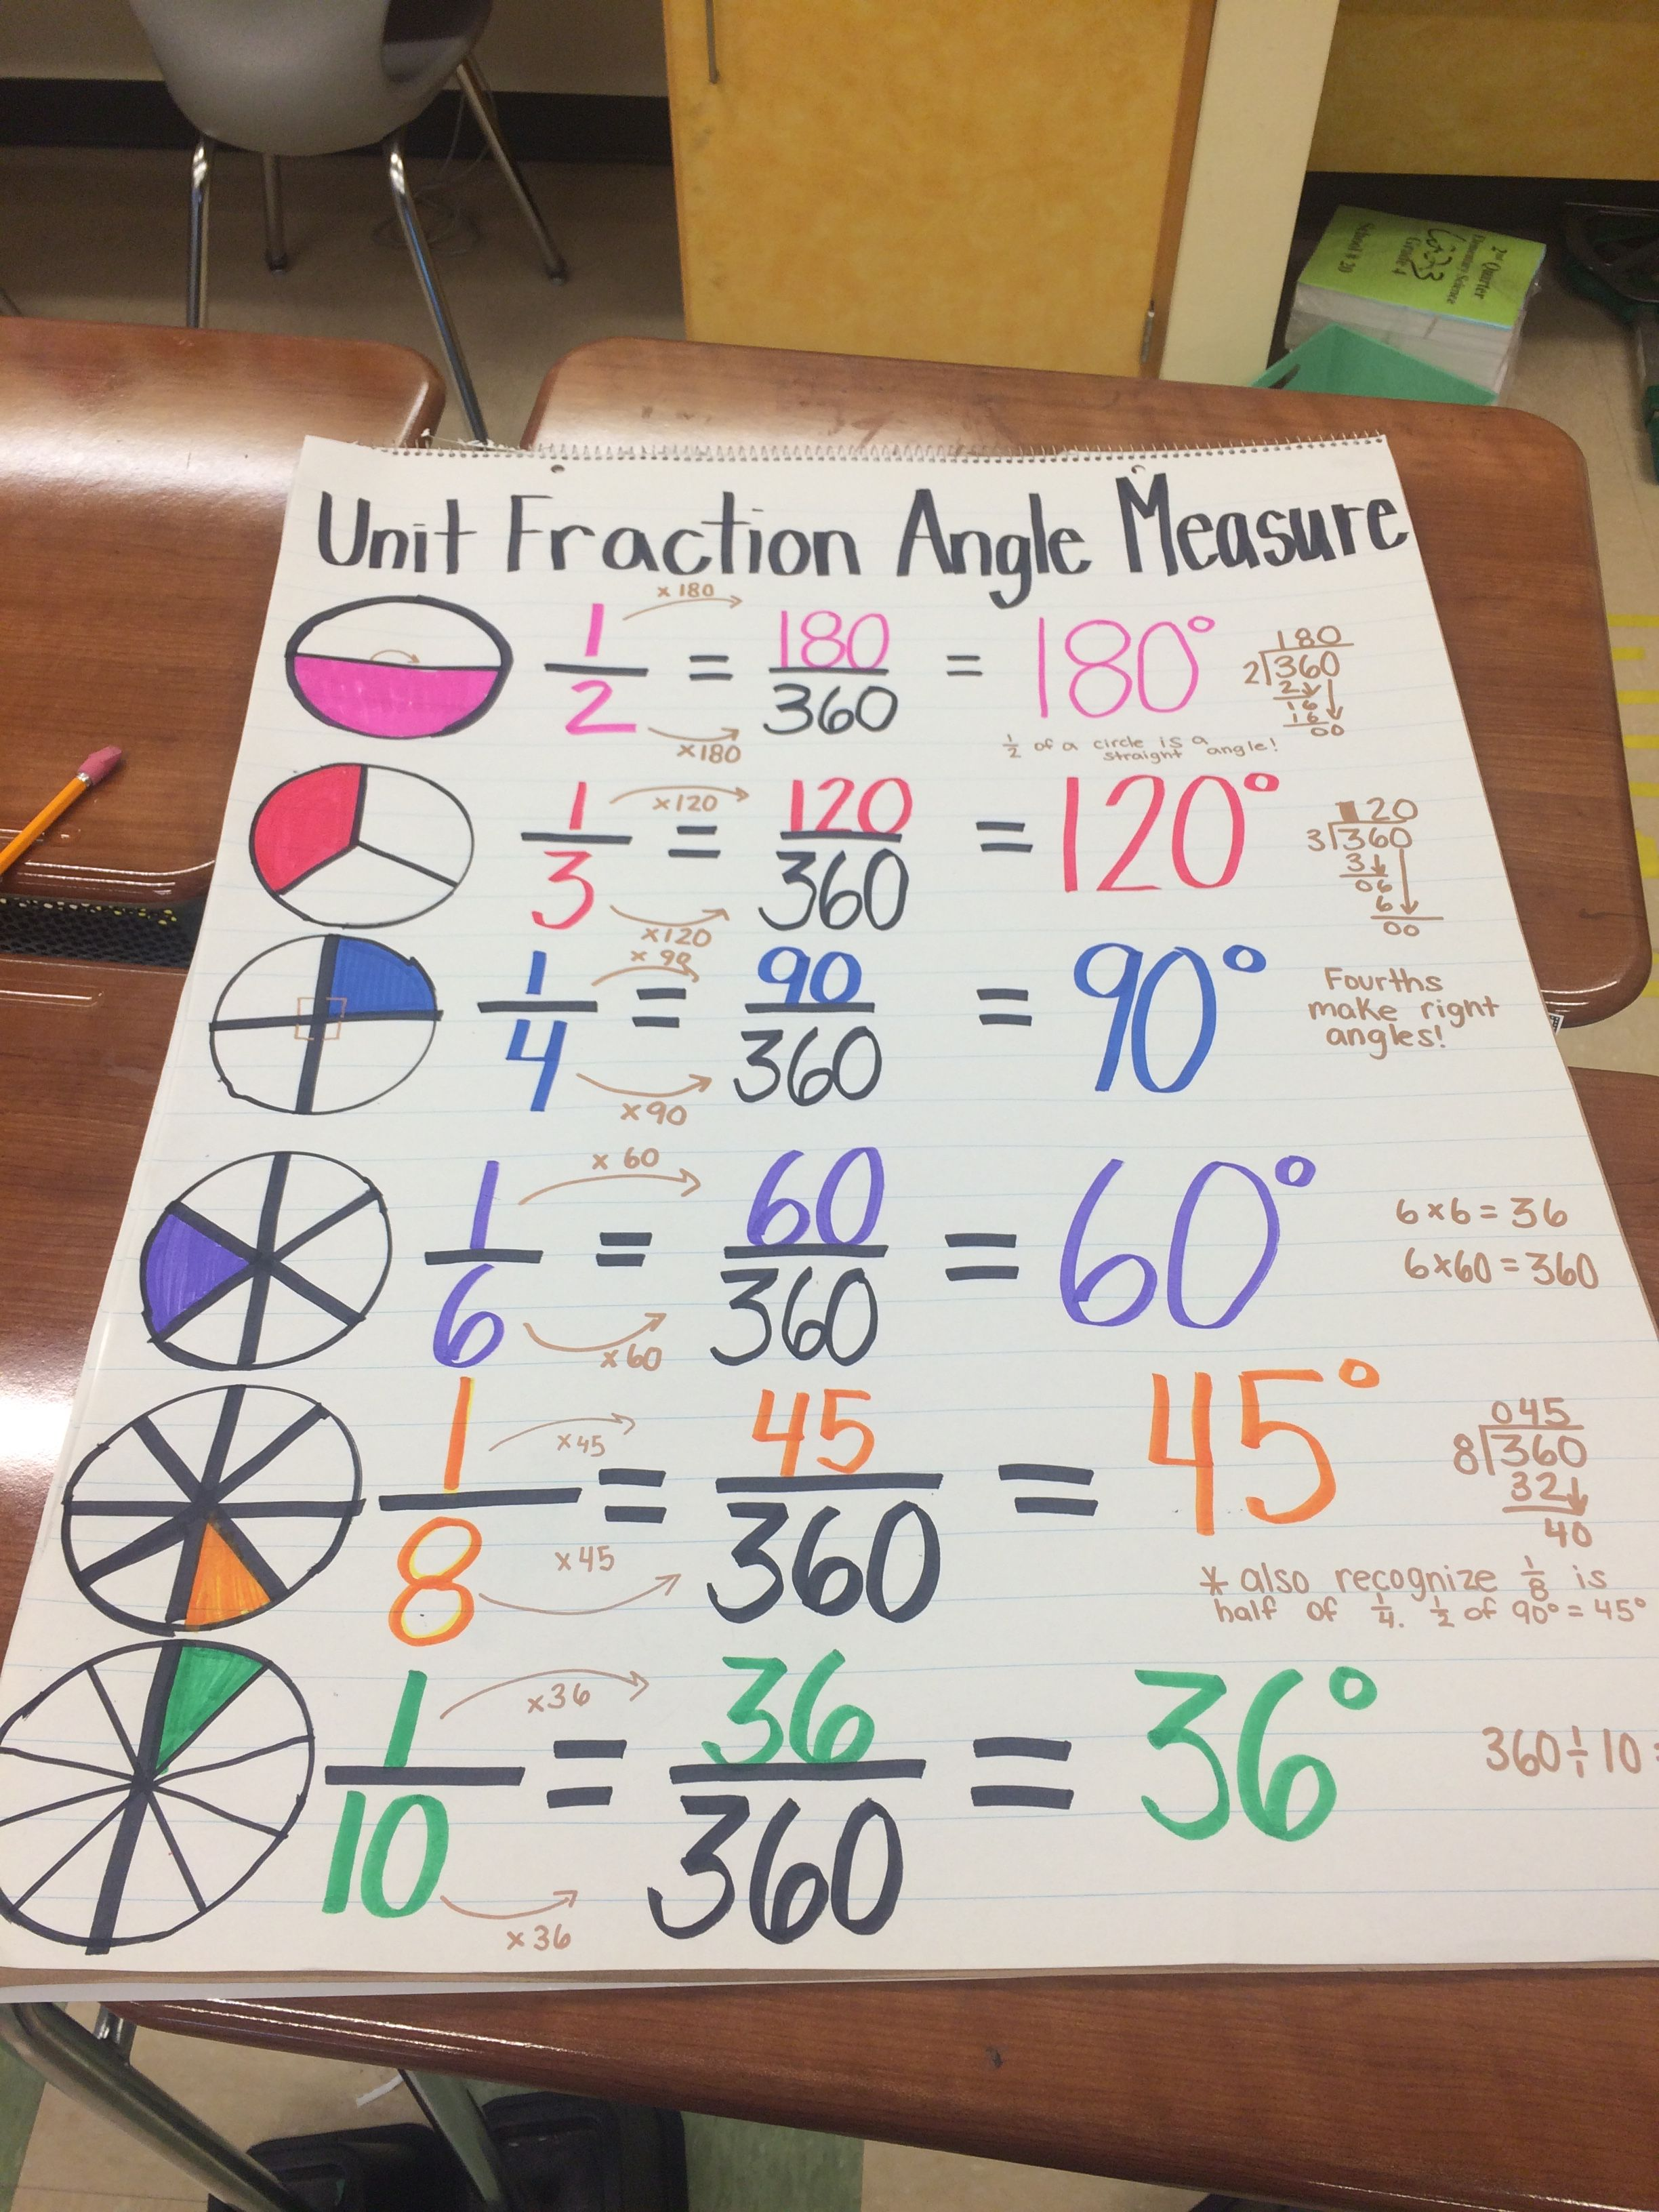 4 5 Anchor Chart Unit Fraction Angle Measures Using Equivalent Fractions To Find Angle